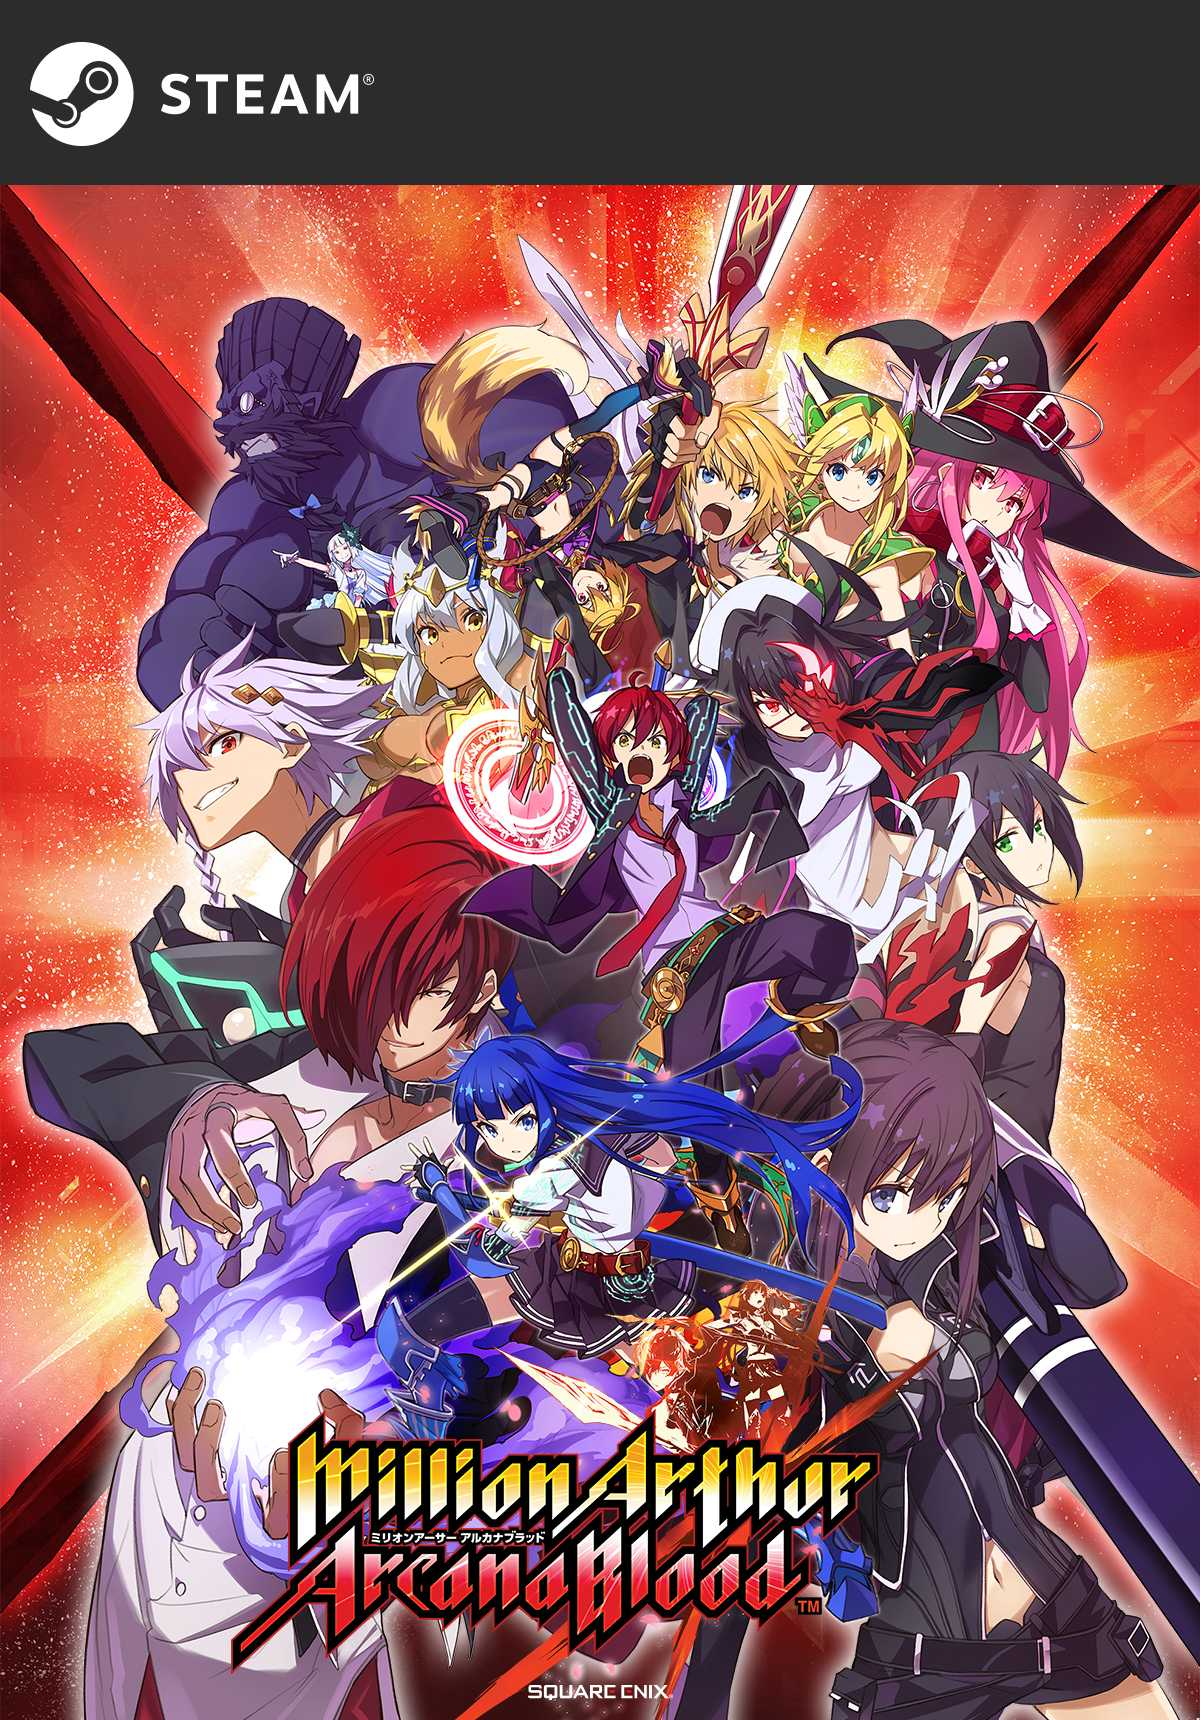 Million Arthur Arcana Blood-SKIDROW PC Direct Download [ Crack ]